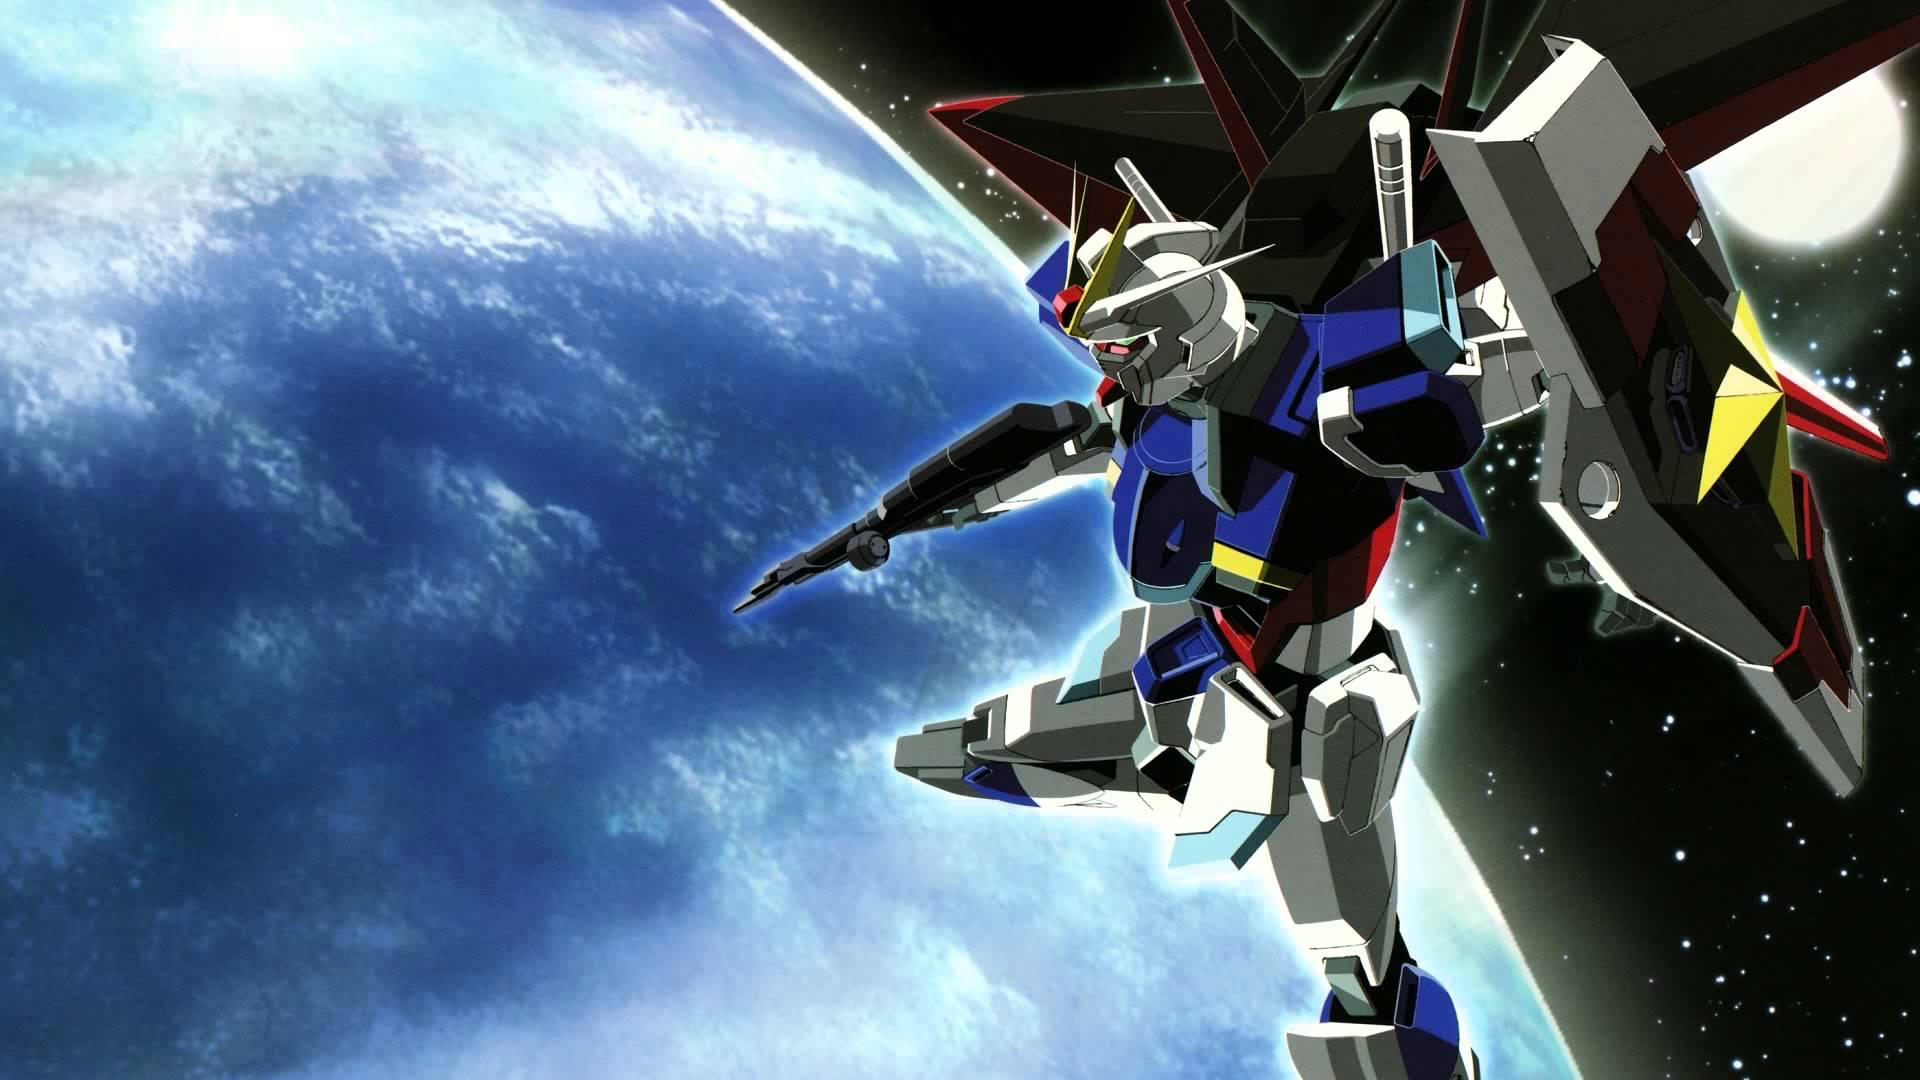 Gundam SEED Destiny OST 2   1 High Quality 1080p HD 1920x1080